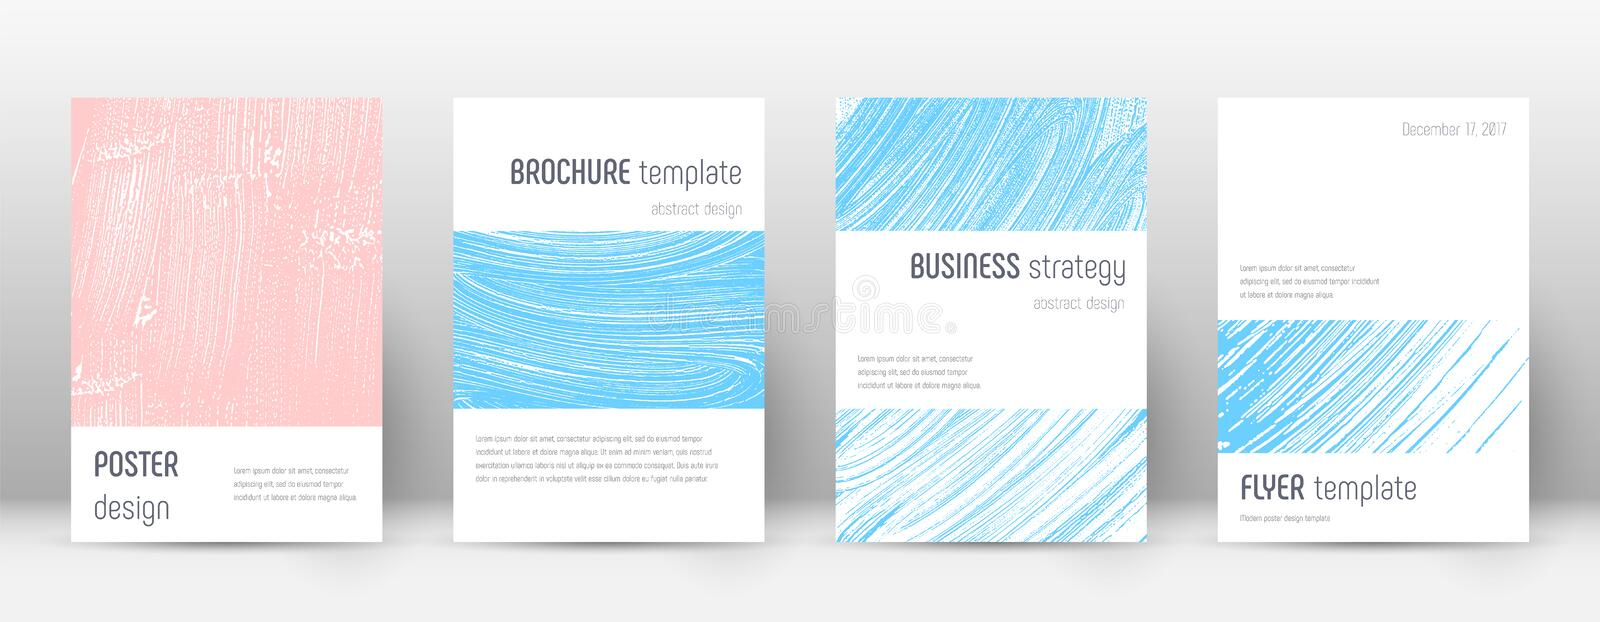 Cover page design template. Minimalistic brochure. Layout. Classy trendy abstract cover page. Pink and blue grunge texture background. Trending poster vector illustration